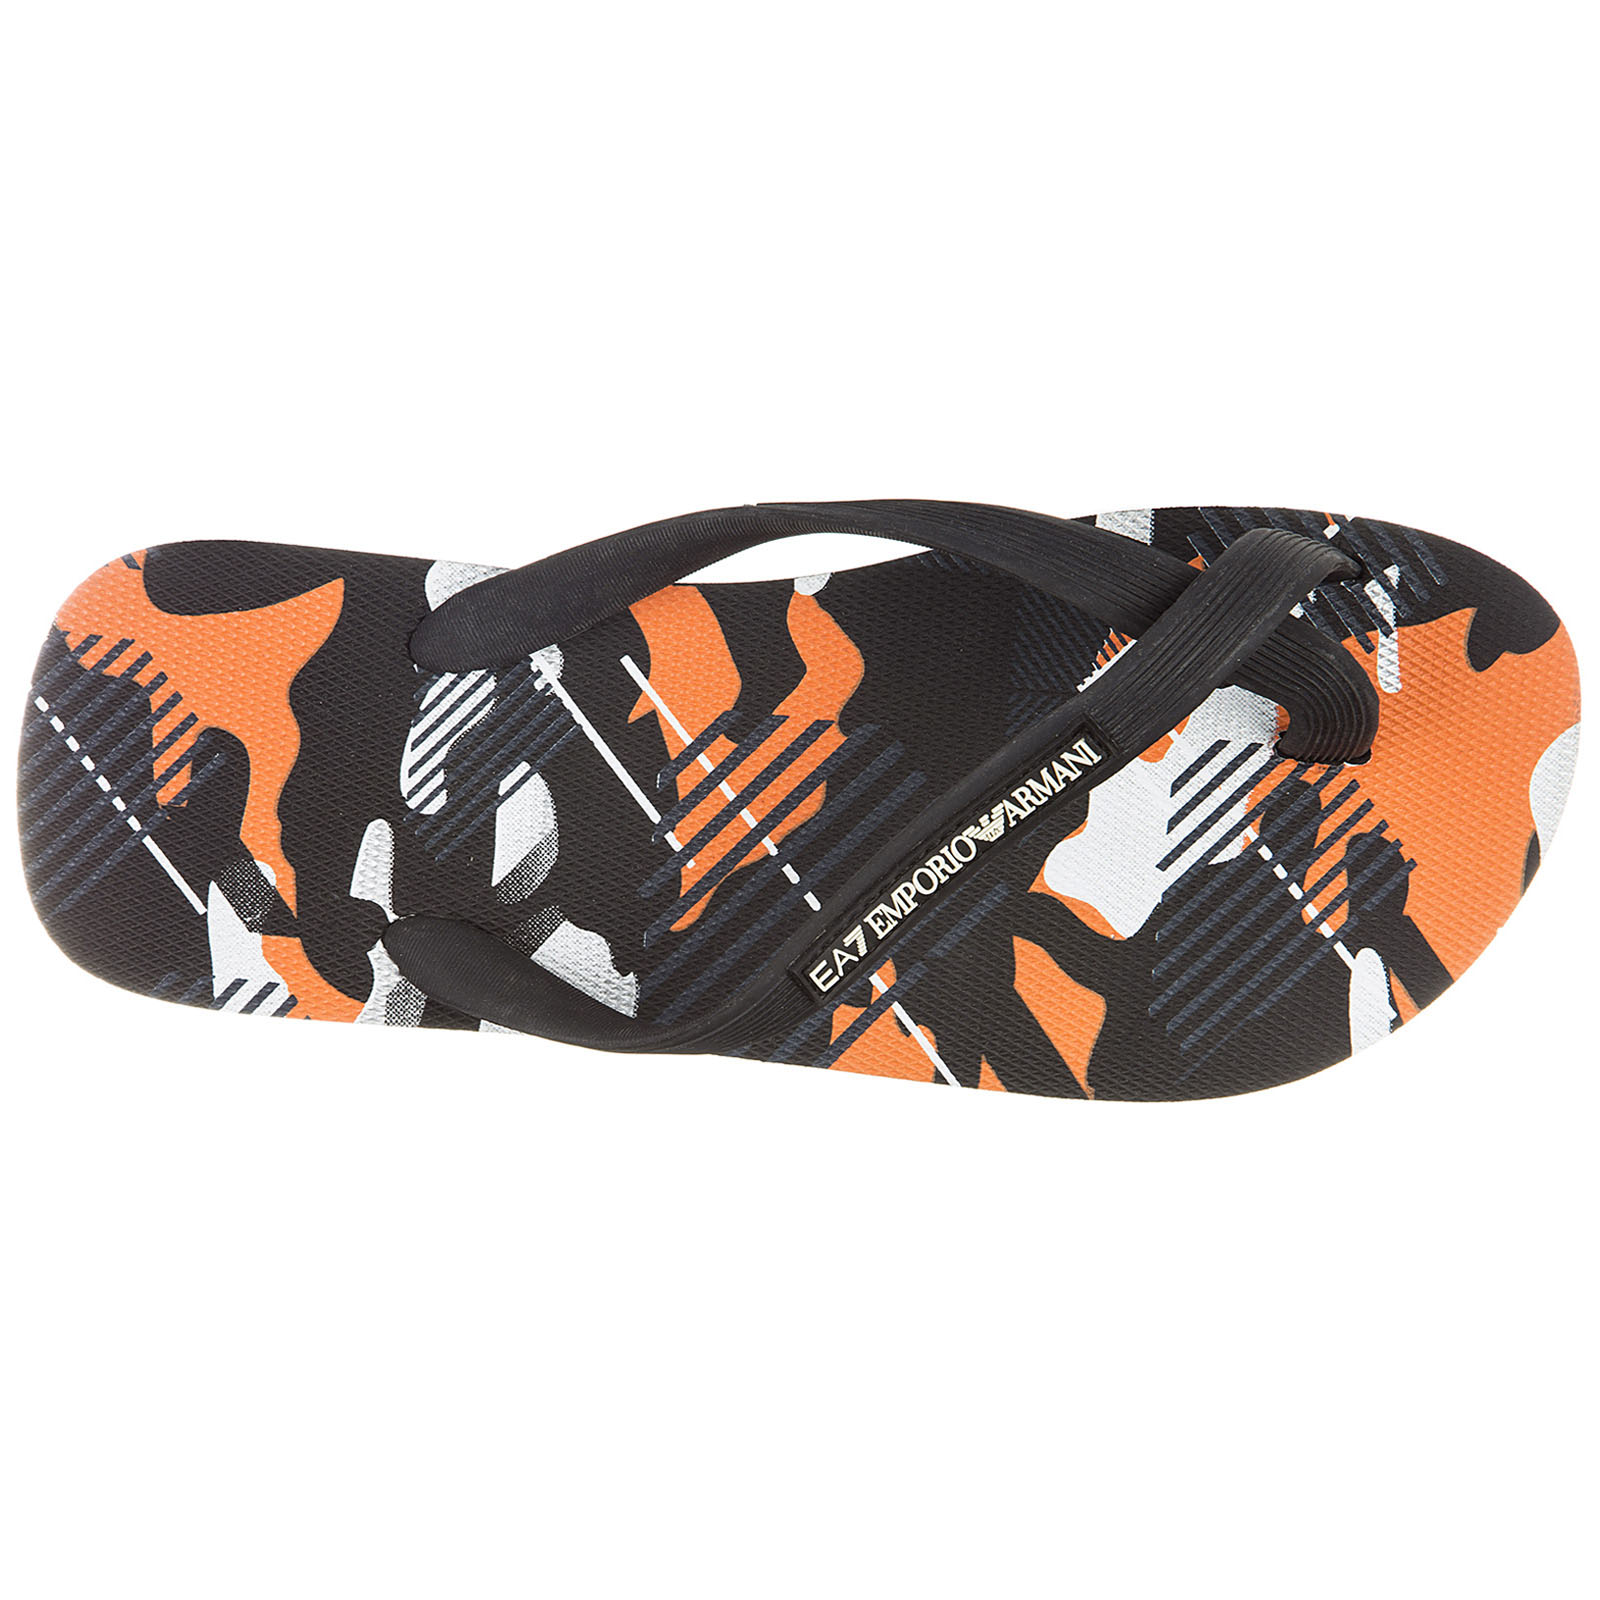 Men's rubber flip flops sandals  sea world camouflage